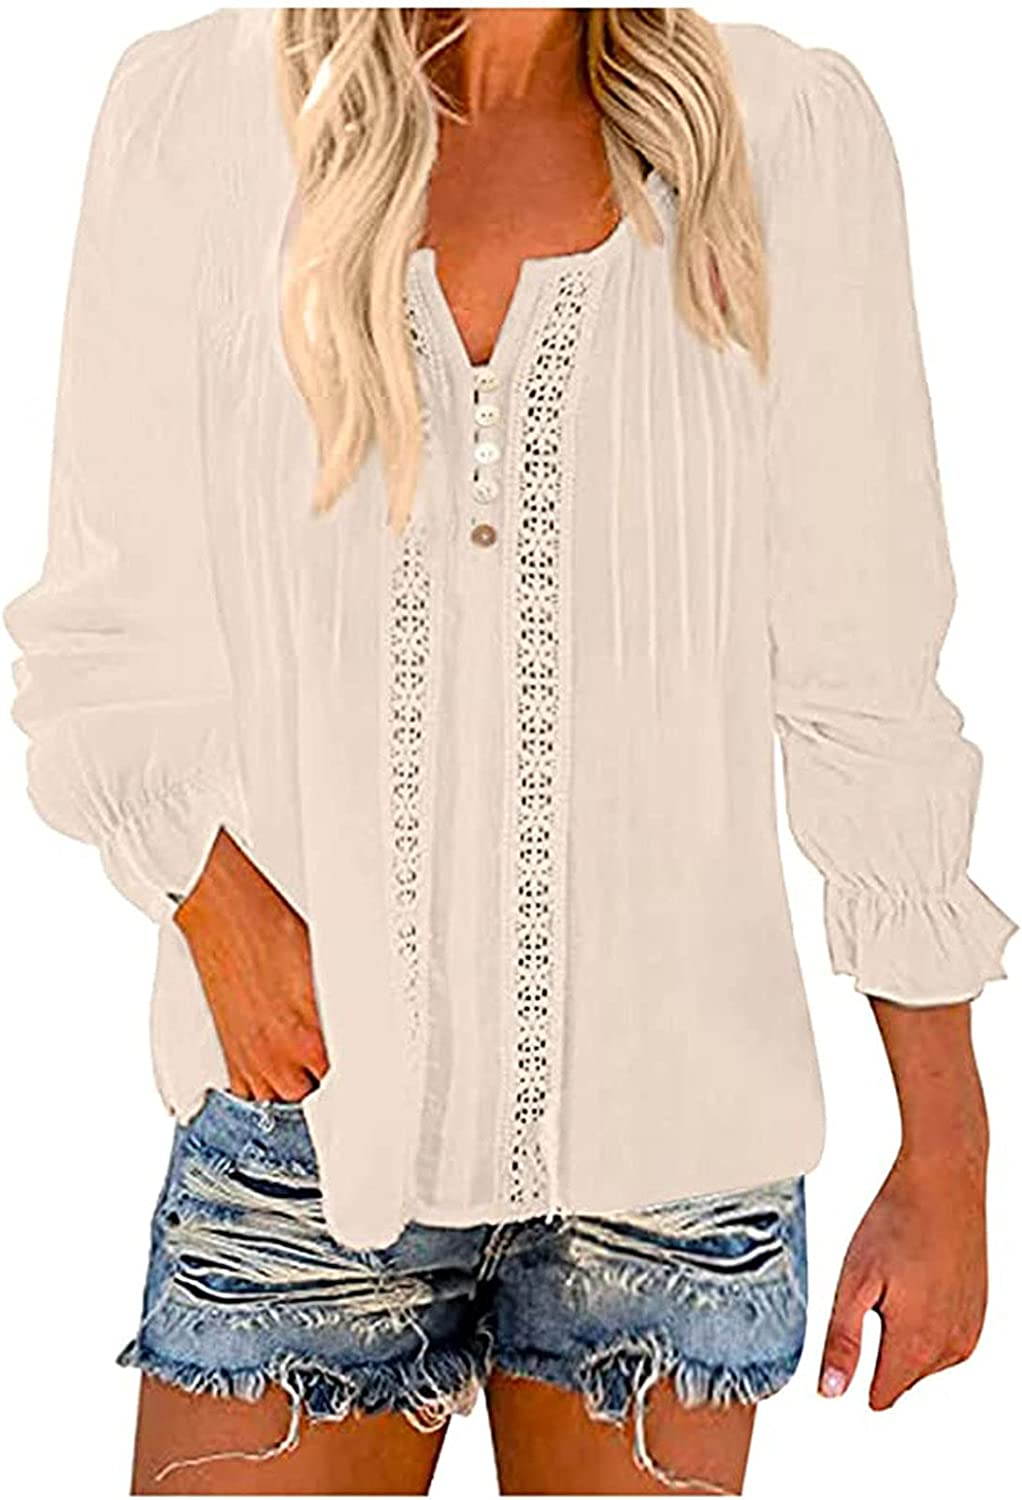 Women Solid V-Neck Lace Crochet Eyelet Shirts Long Sleeve Casual Blouses Tops Summer Loose Tunic Tees